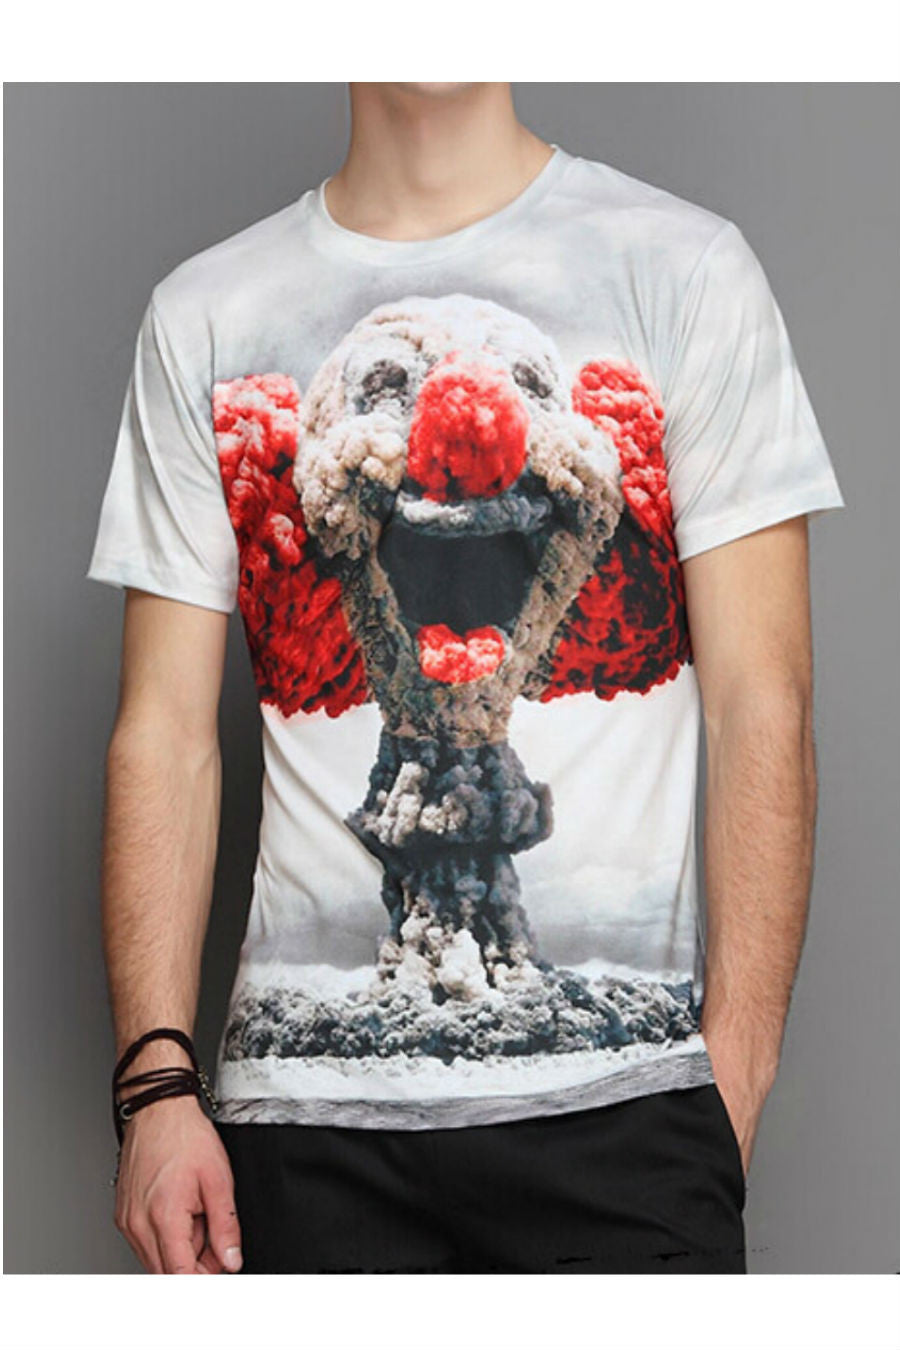 3D Clown Short Sleeve T-shirt